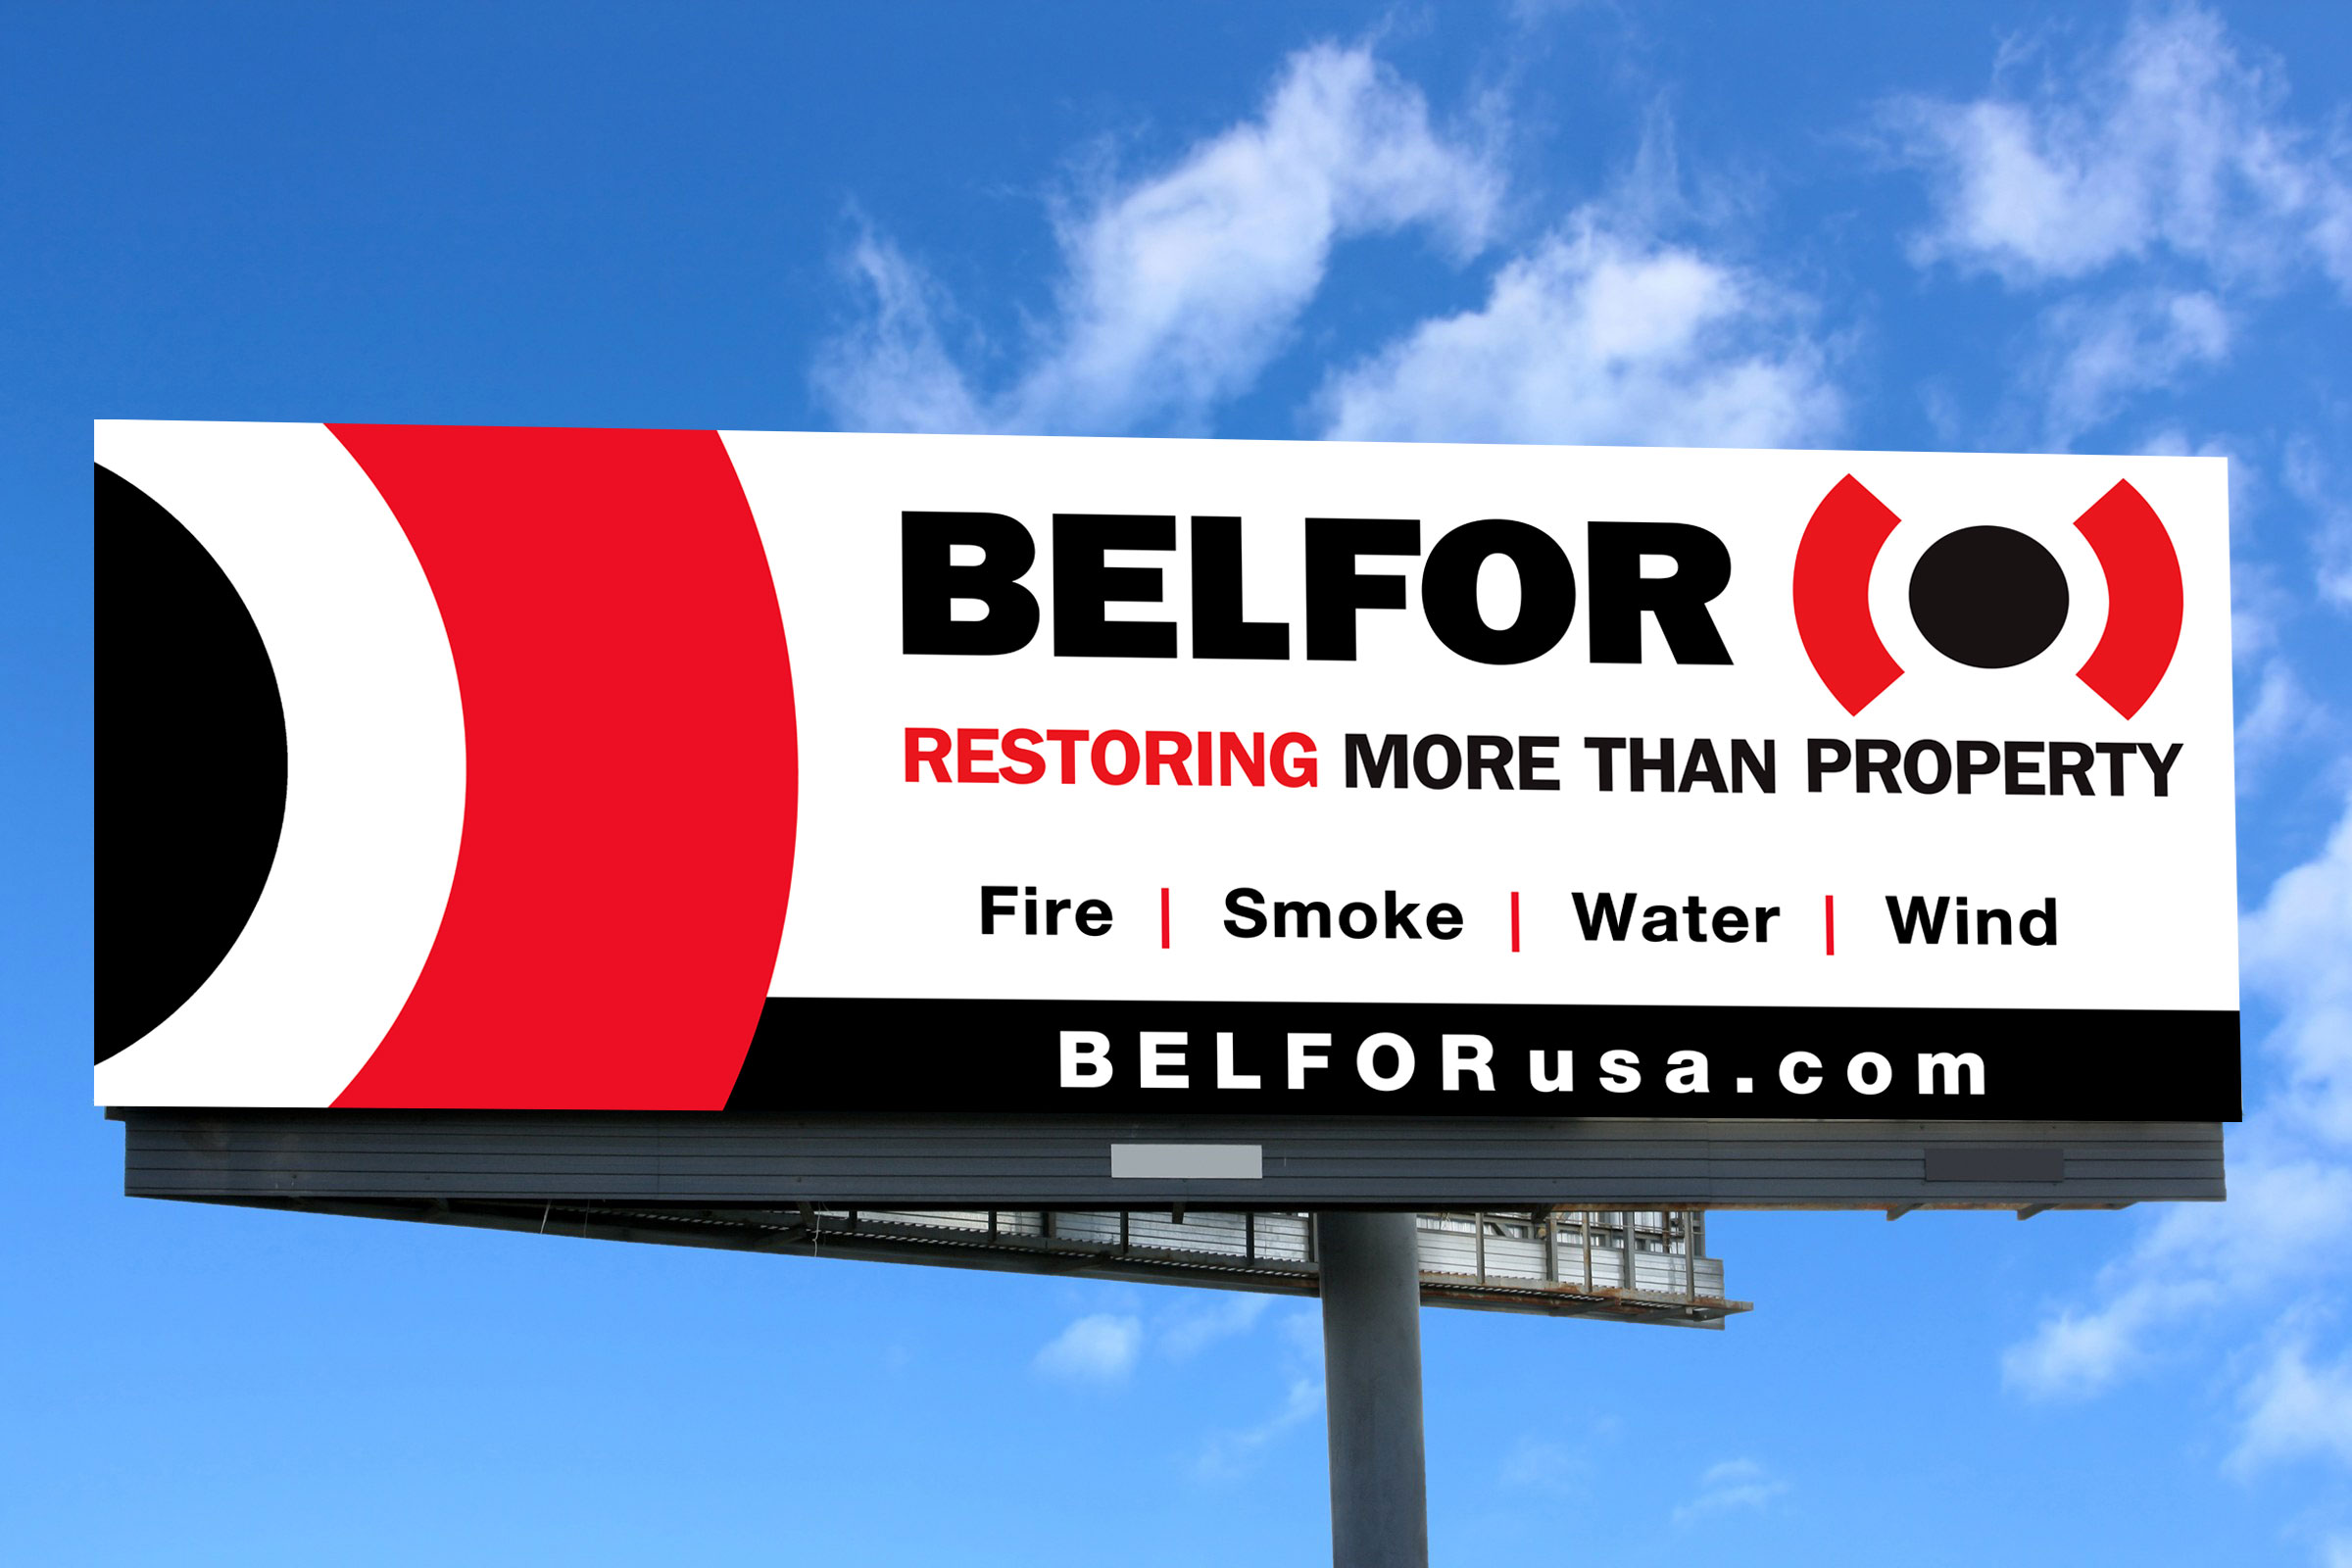 BELFOR Billboard